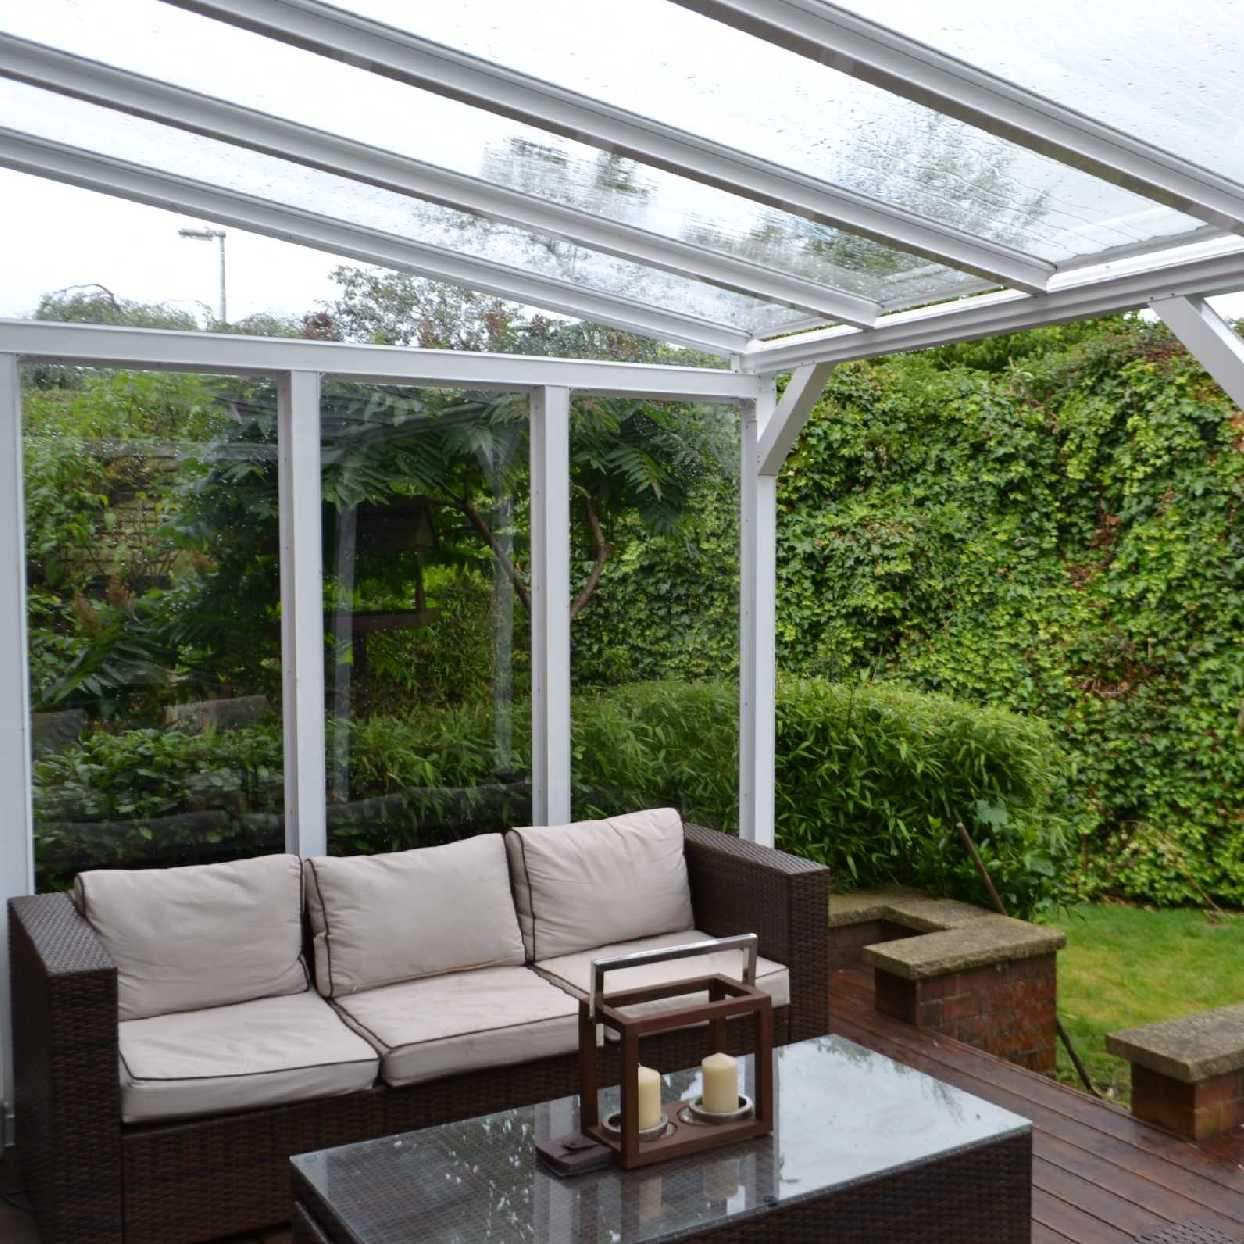 Great selection of Omega Smart Lean-To Canopy with 16mm Polycarbonate Glazing - 3.1m (W) x 4.5m (P), (2) Supporting Posts